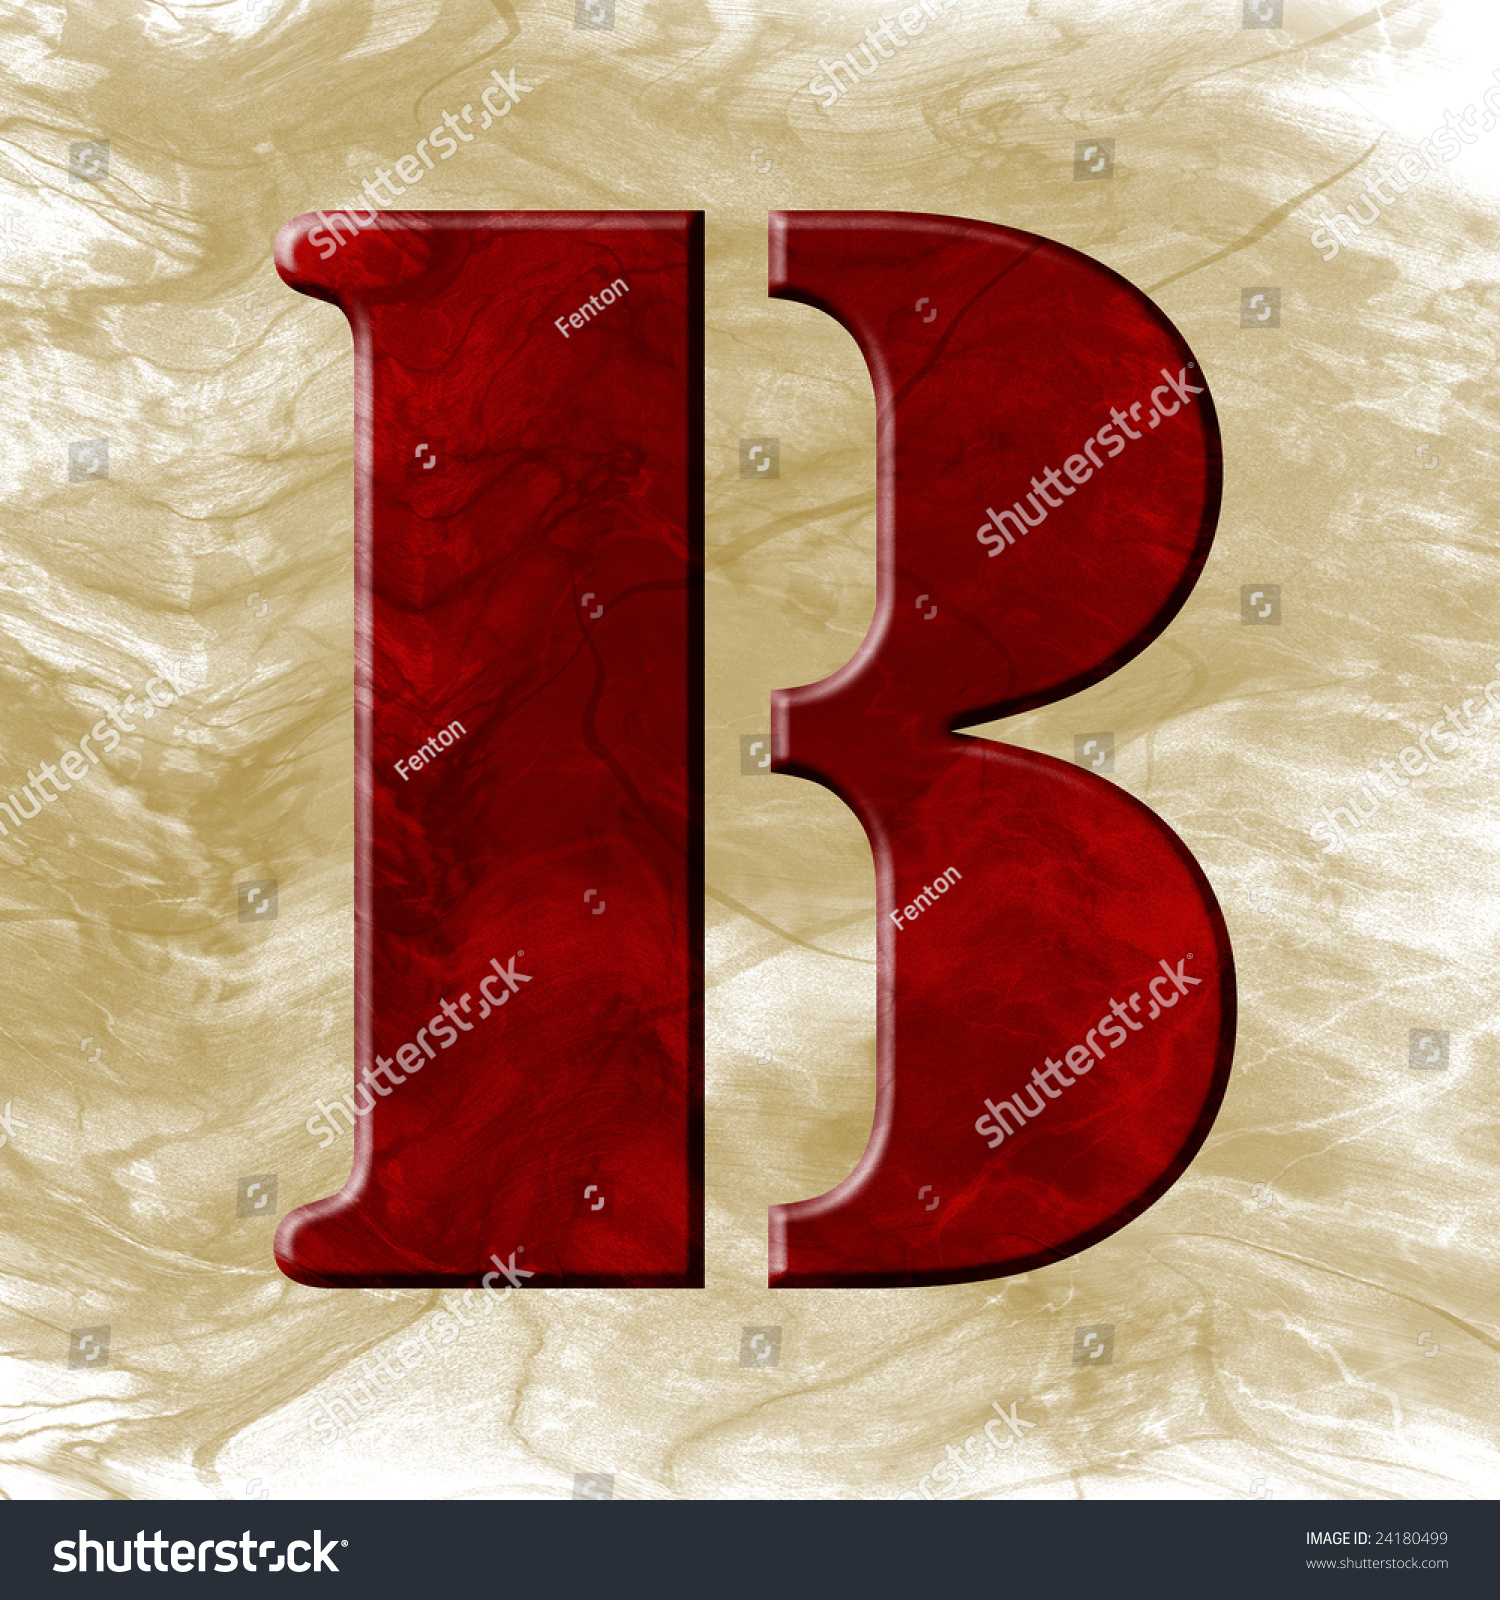 letter a photography wax font letter b stock photo 24180499 16410 | stock photo wax font letter b 24180499